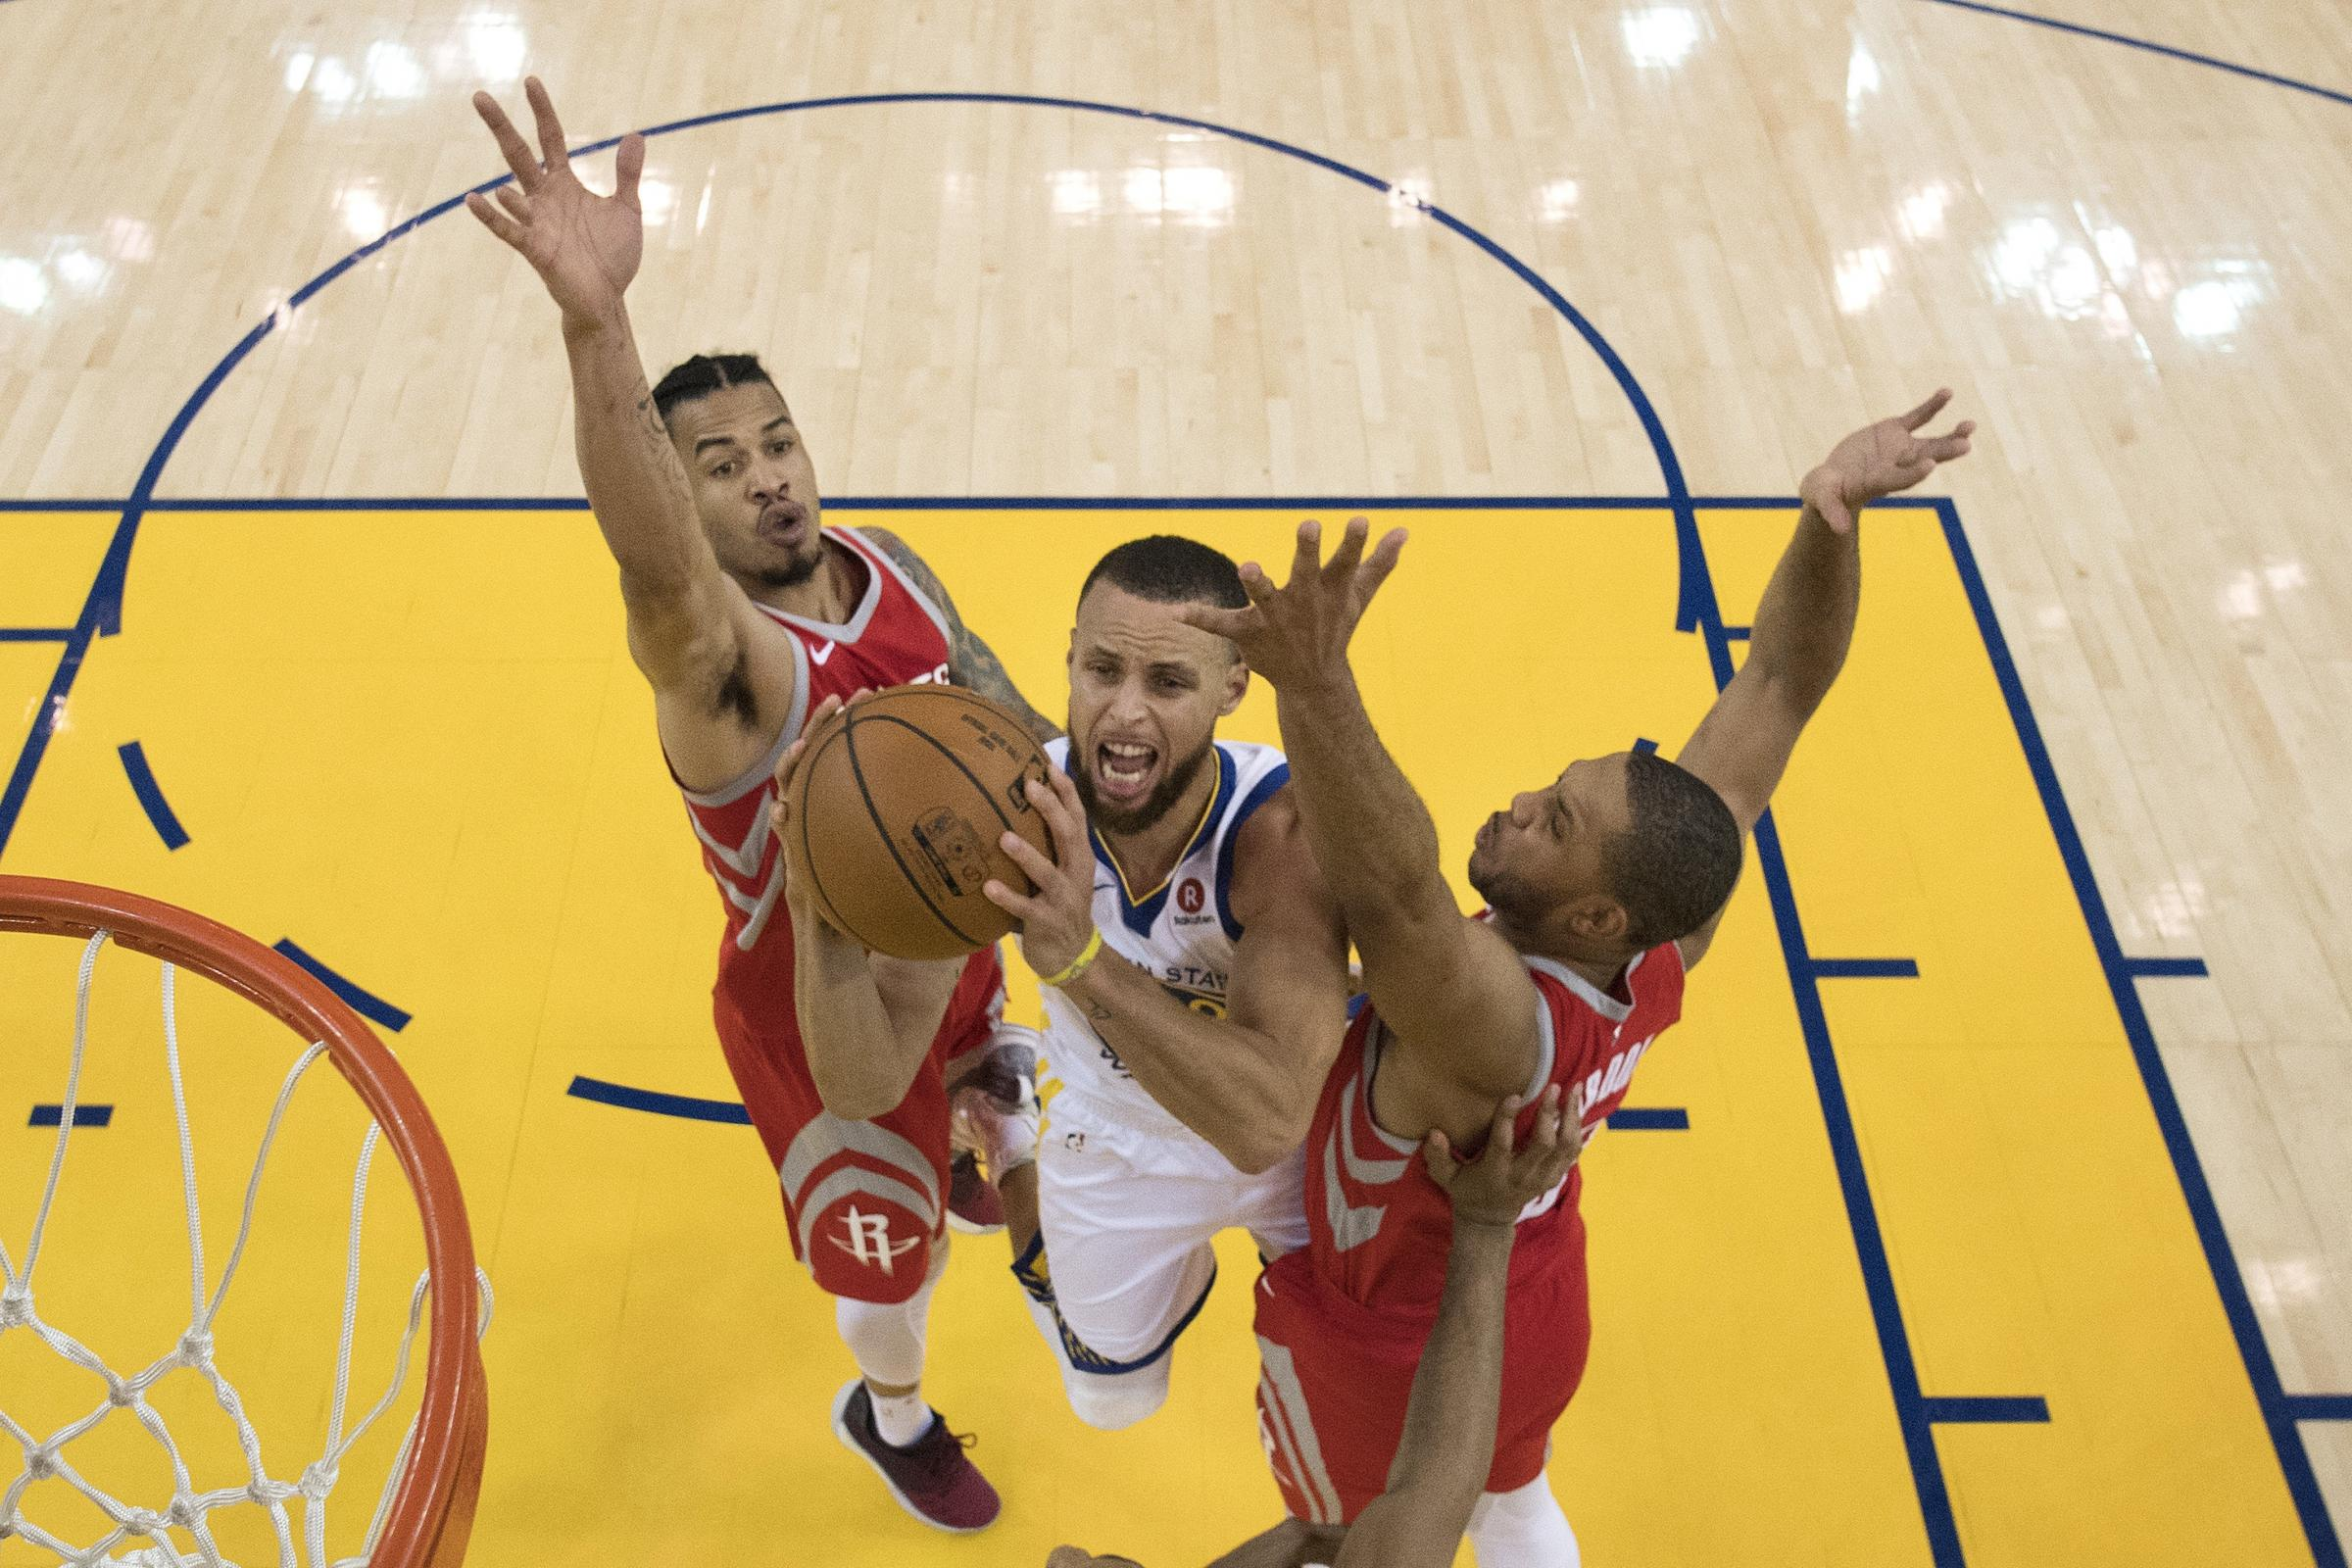 Stephen Curry shoots between Houston Rockets' Gerald Green and Eric Gordon (Kyle Terada/Pool/AP)